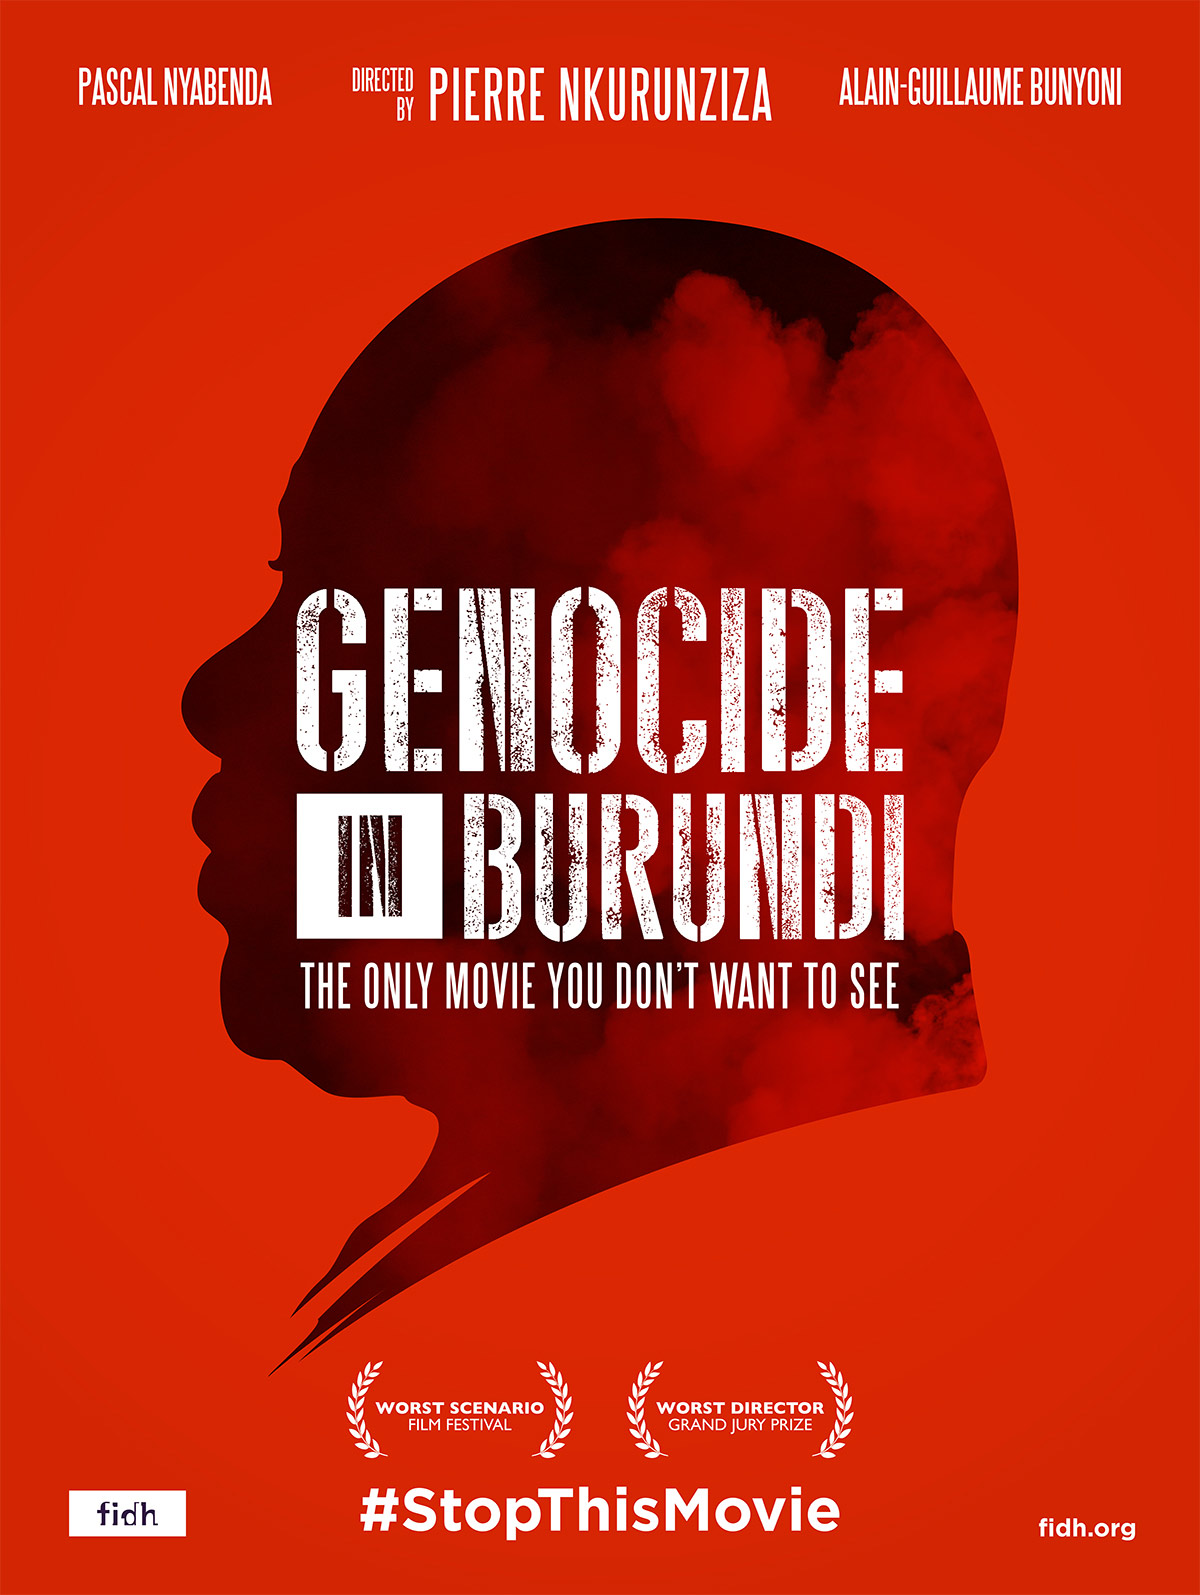 KR_1611_Burundi_#Stopthismovie_FIDH-movie_poster